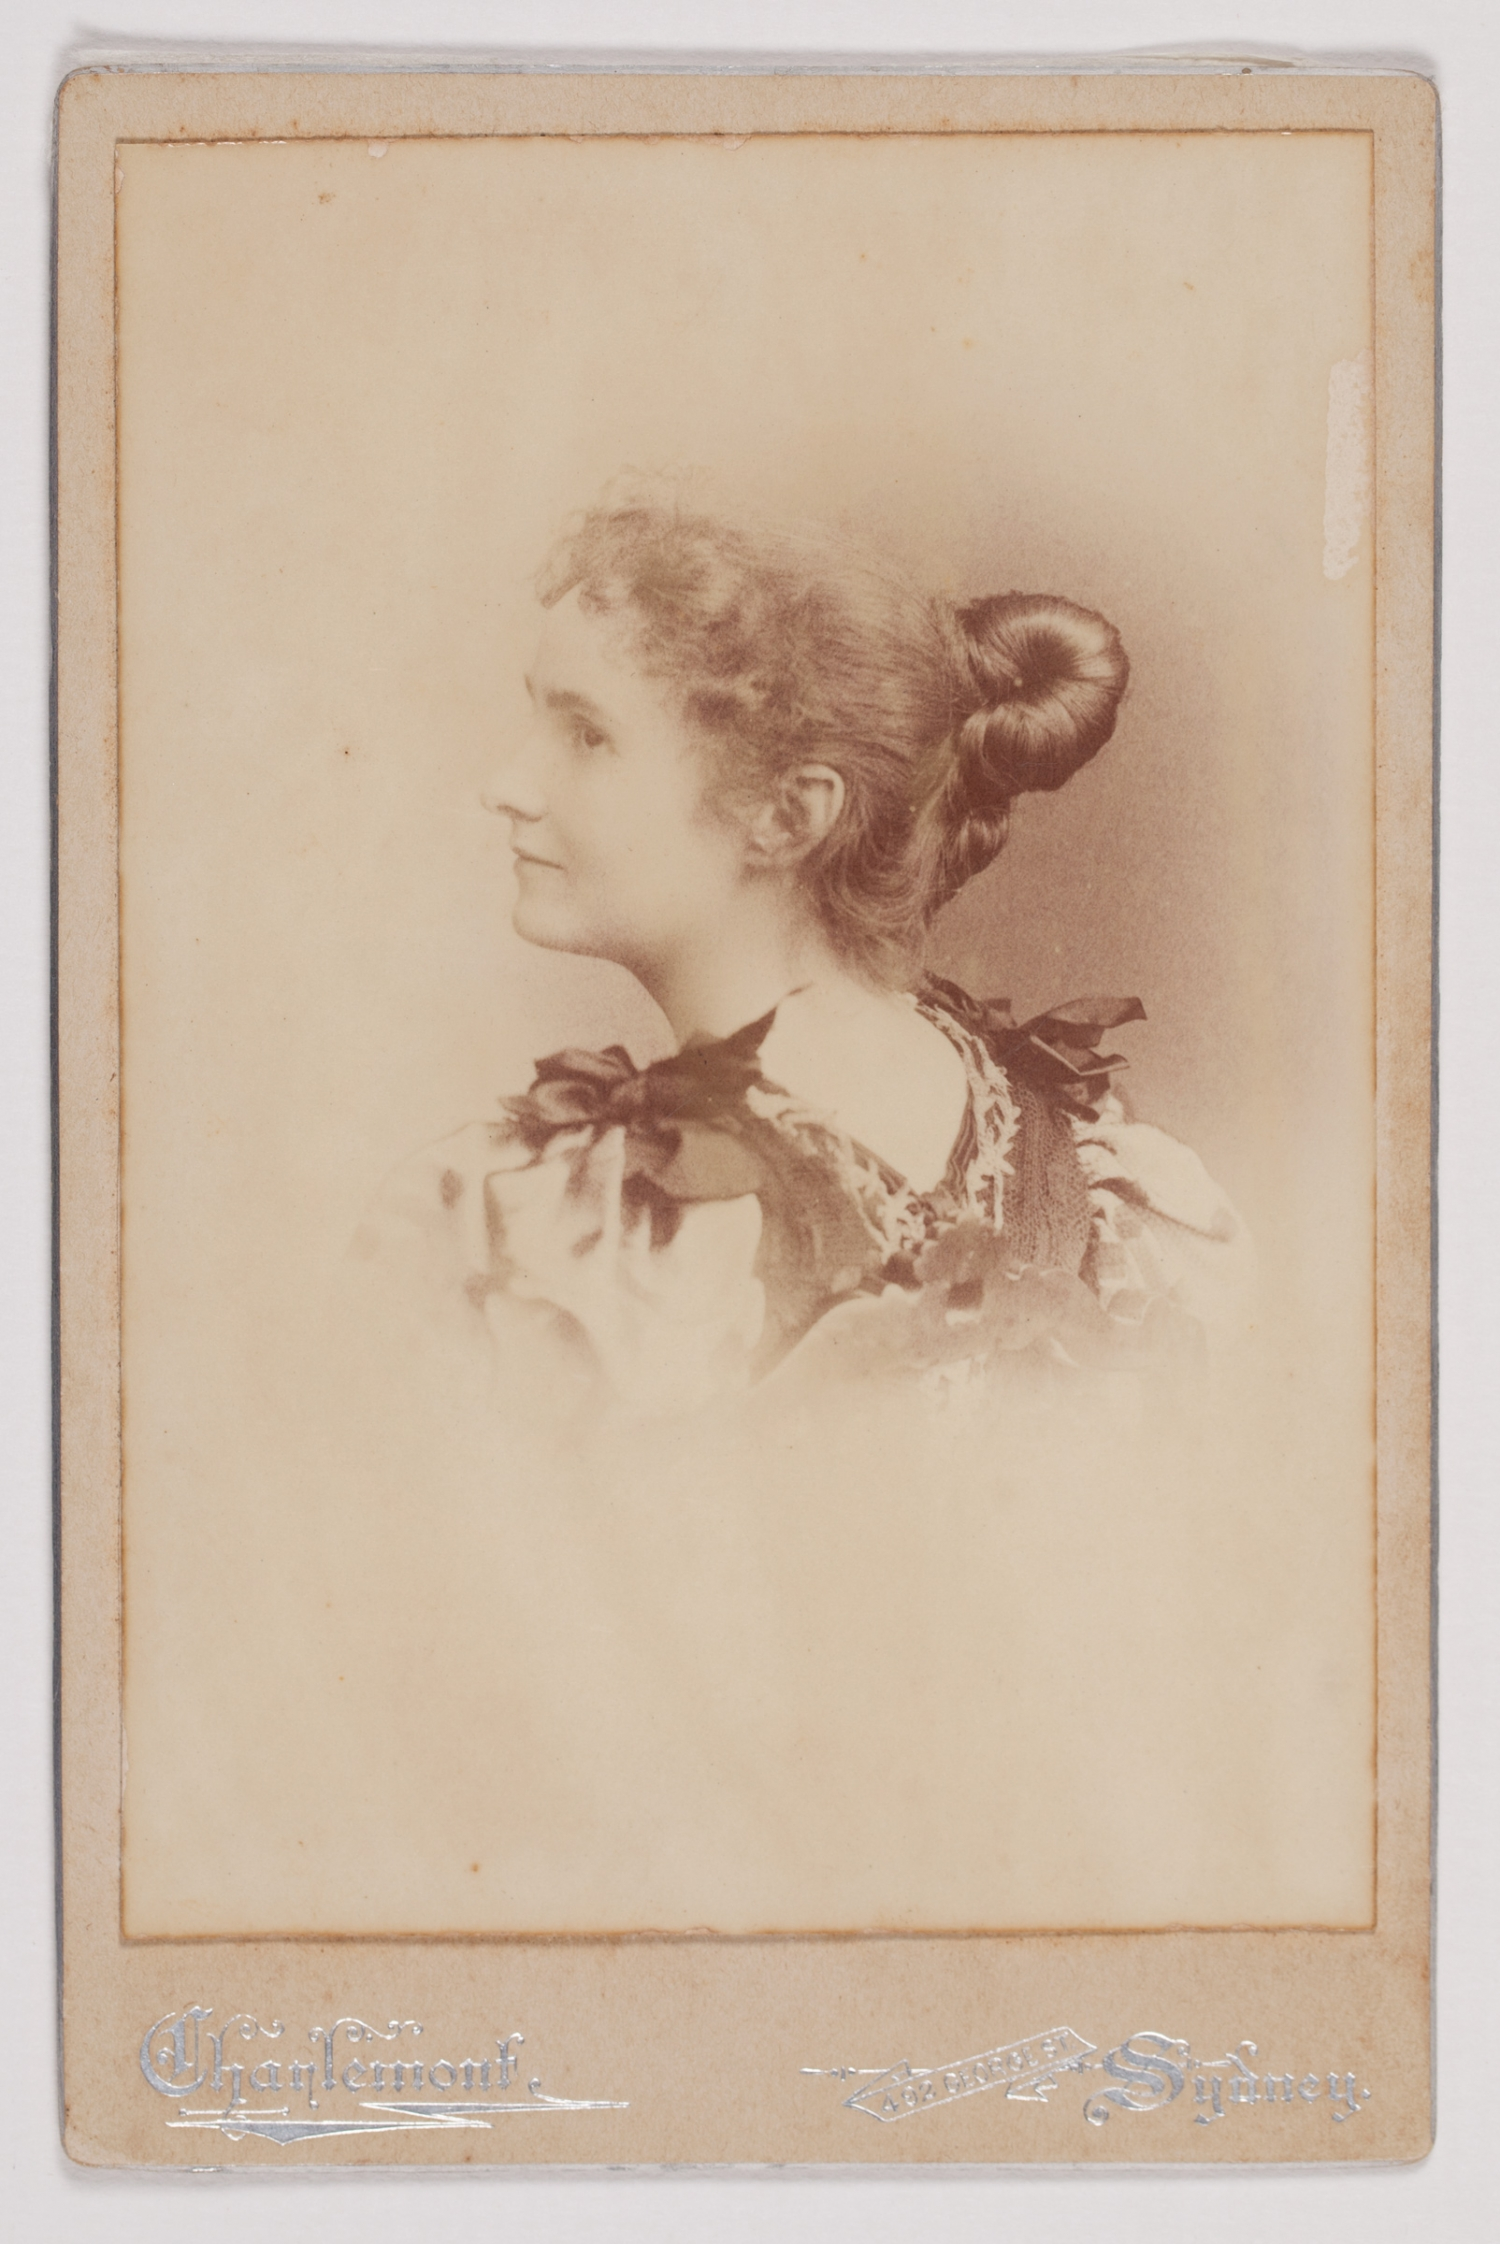 Side view portrait of young woman with hair up in knot.